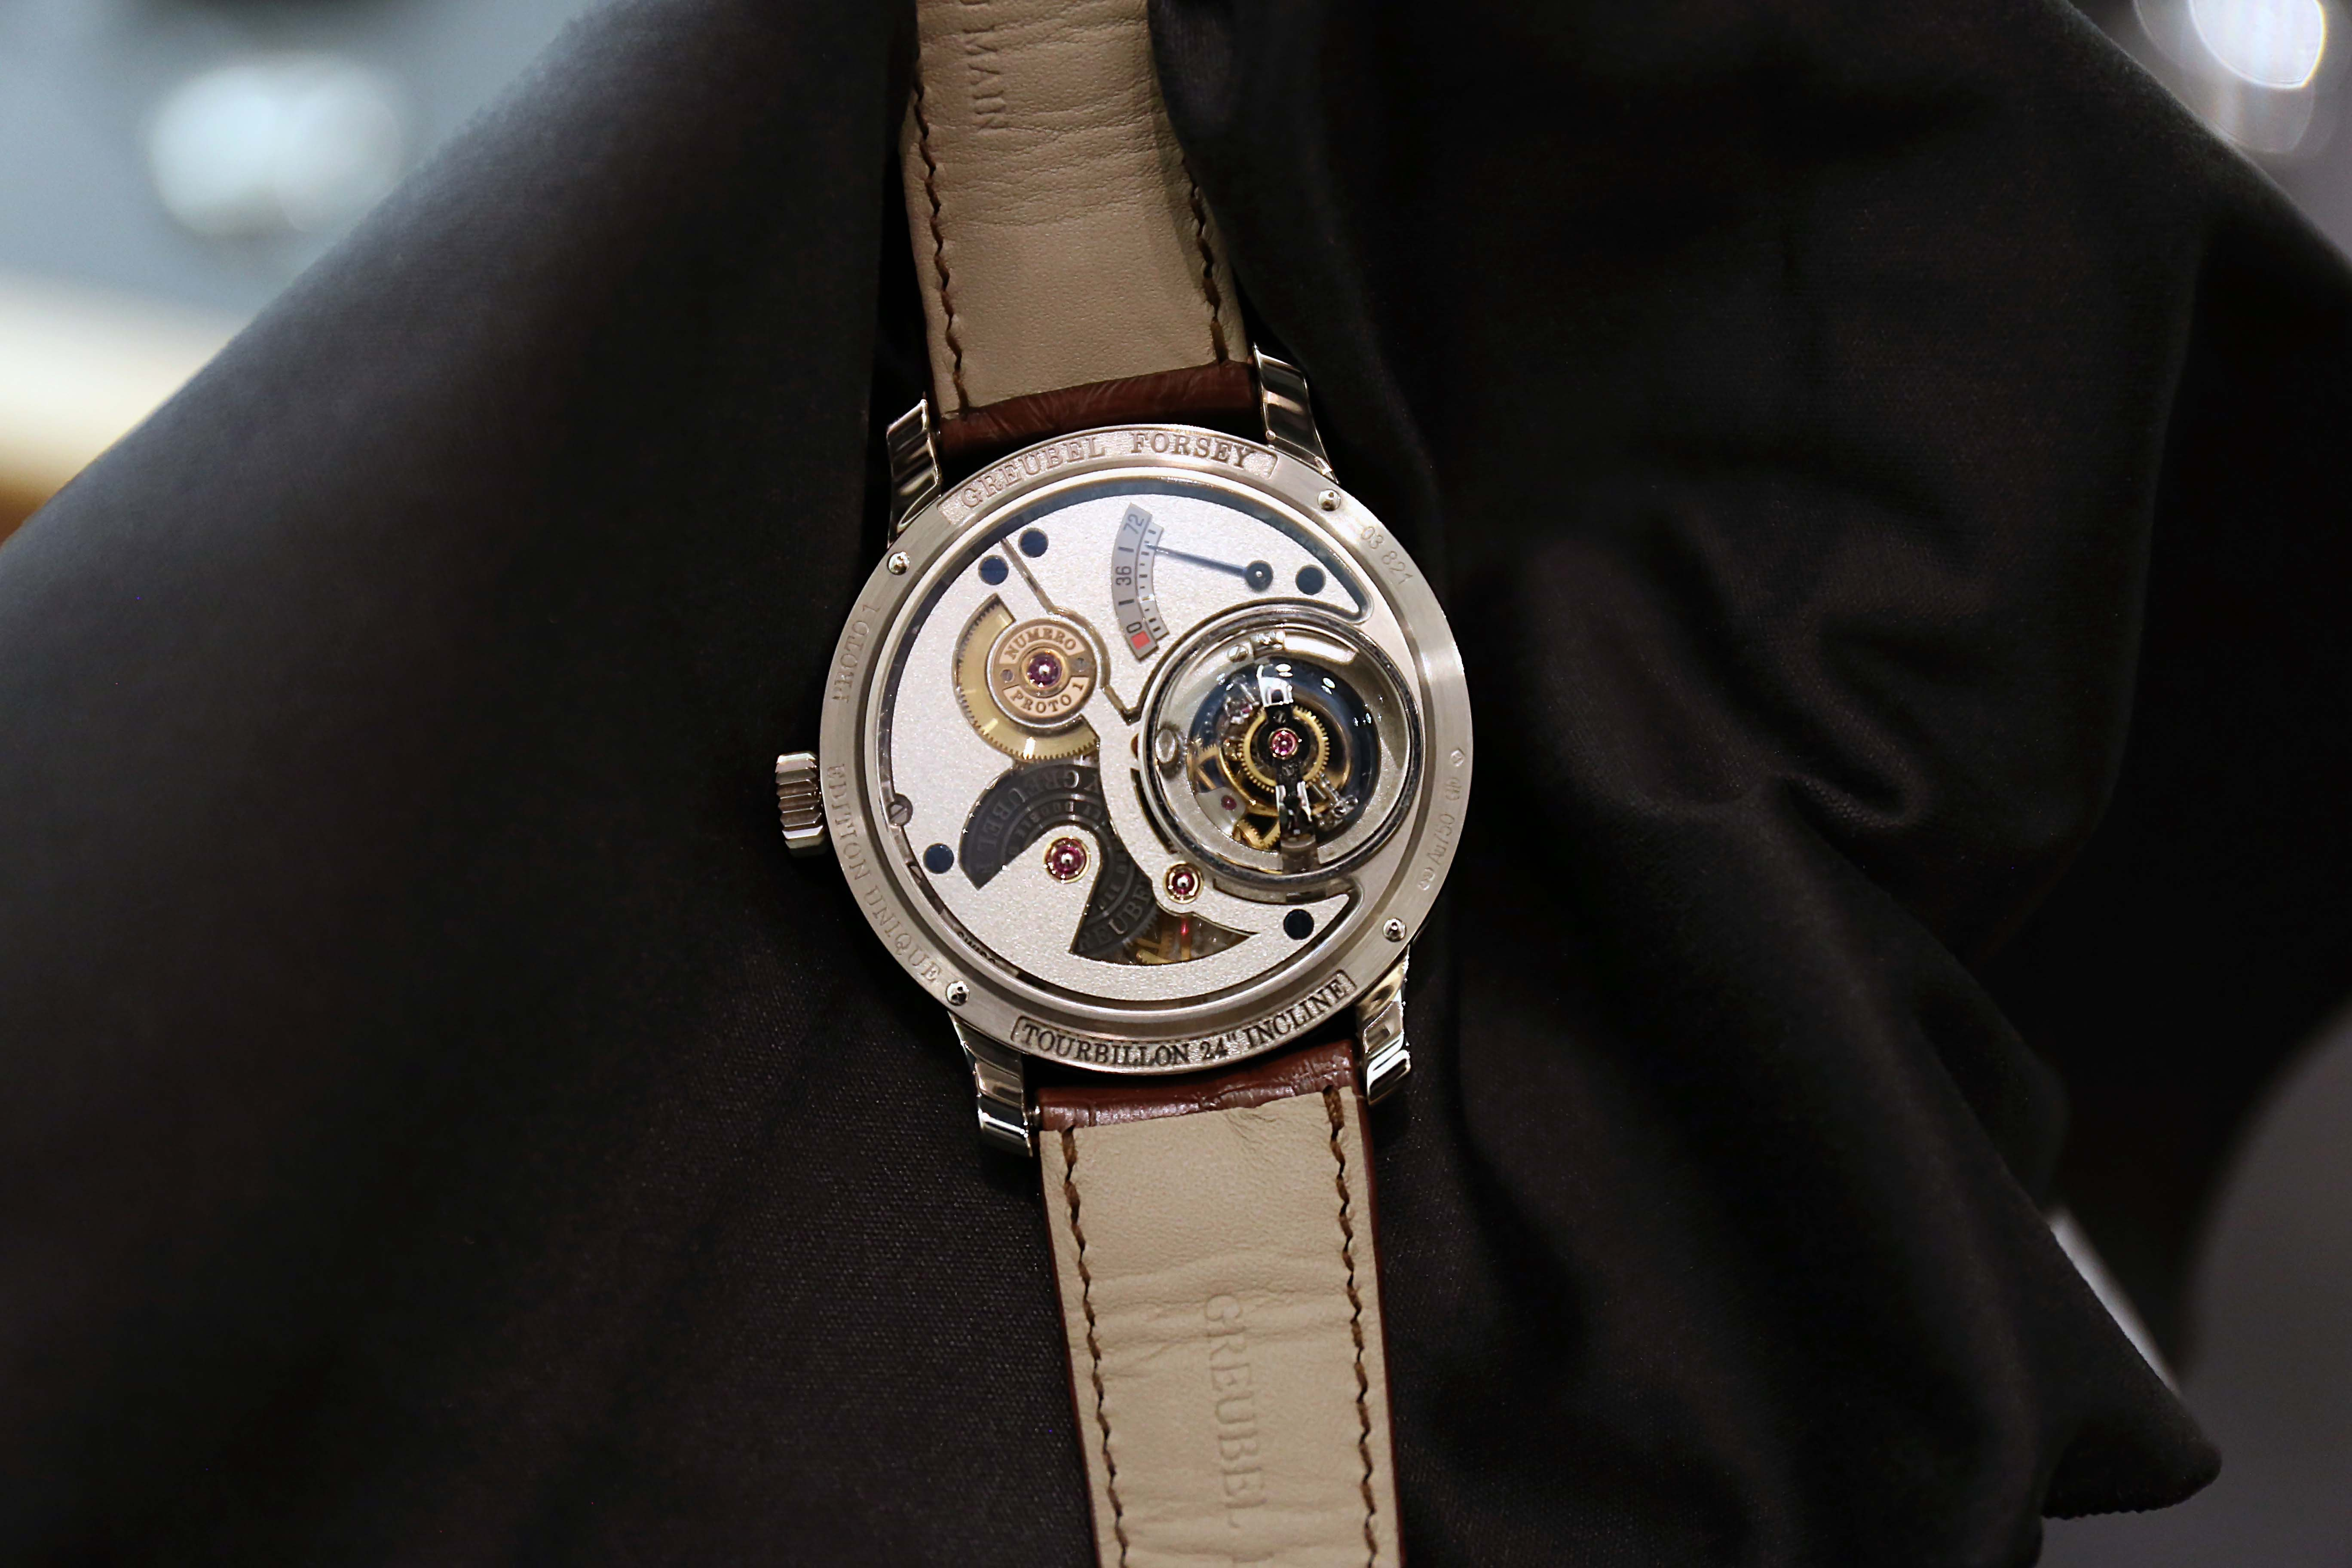 Greubel Forsey Tourbillon 24 Secondes Vision Chocolate Dial Back Hands-On: The Greubel Forsey Tourbillon 24 Secondes Vision In Platinum With A Chocolate Brown Dial Hands-On: The Greubel Forsey Tourbillon 24 Secondes Vision In Platinum With A Chocolate Brown Dial IMG 4440